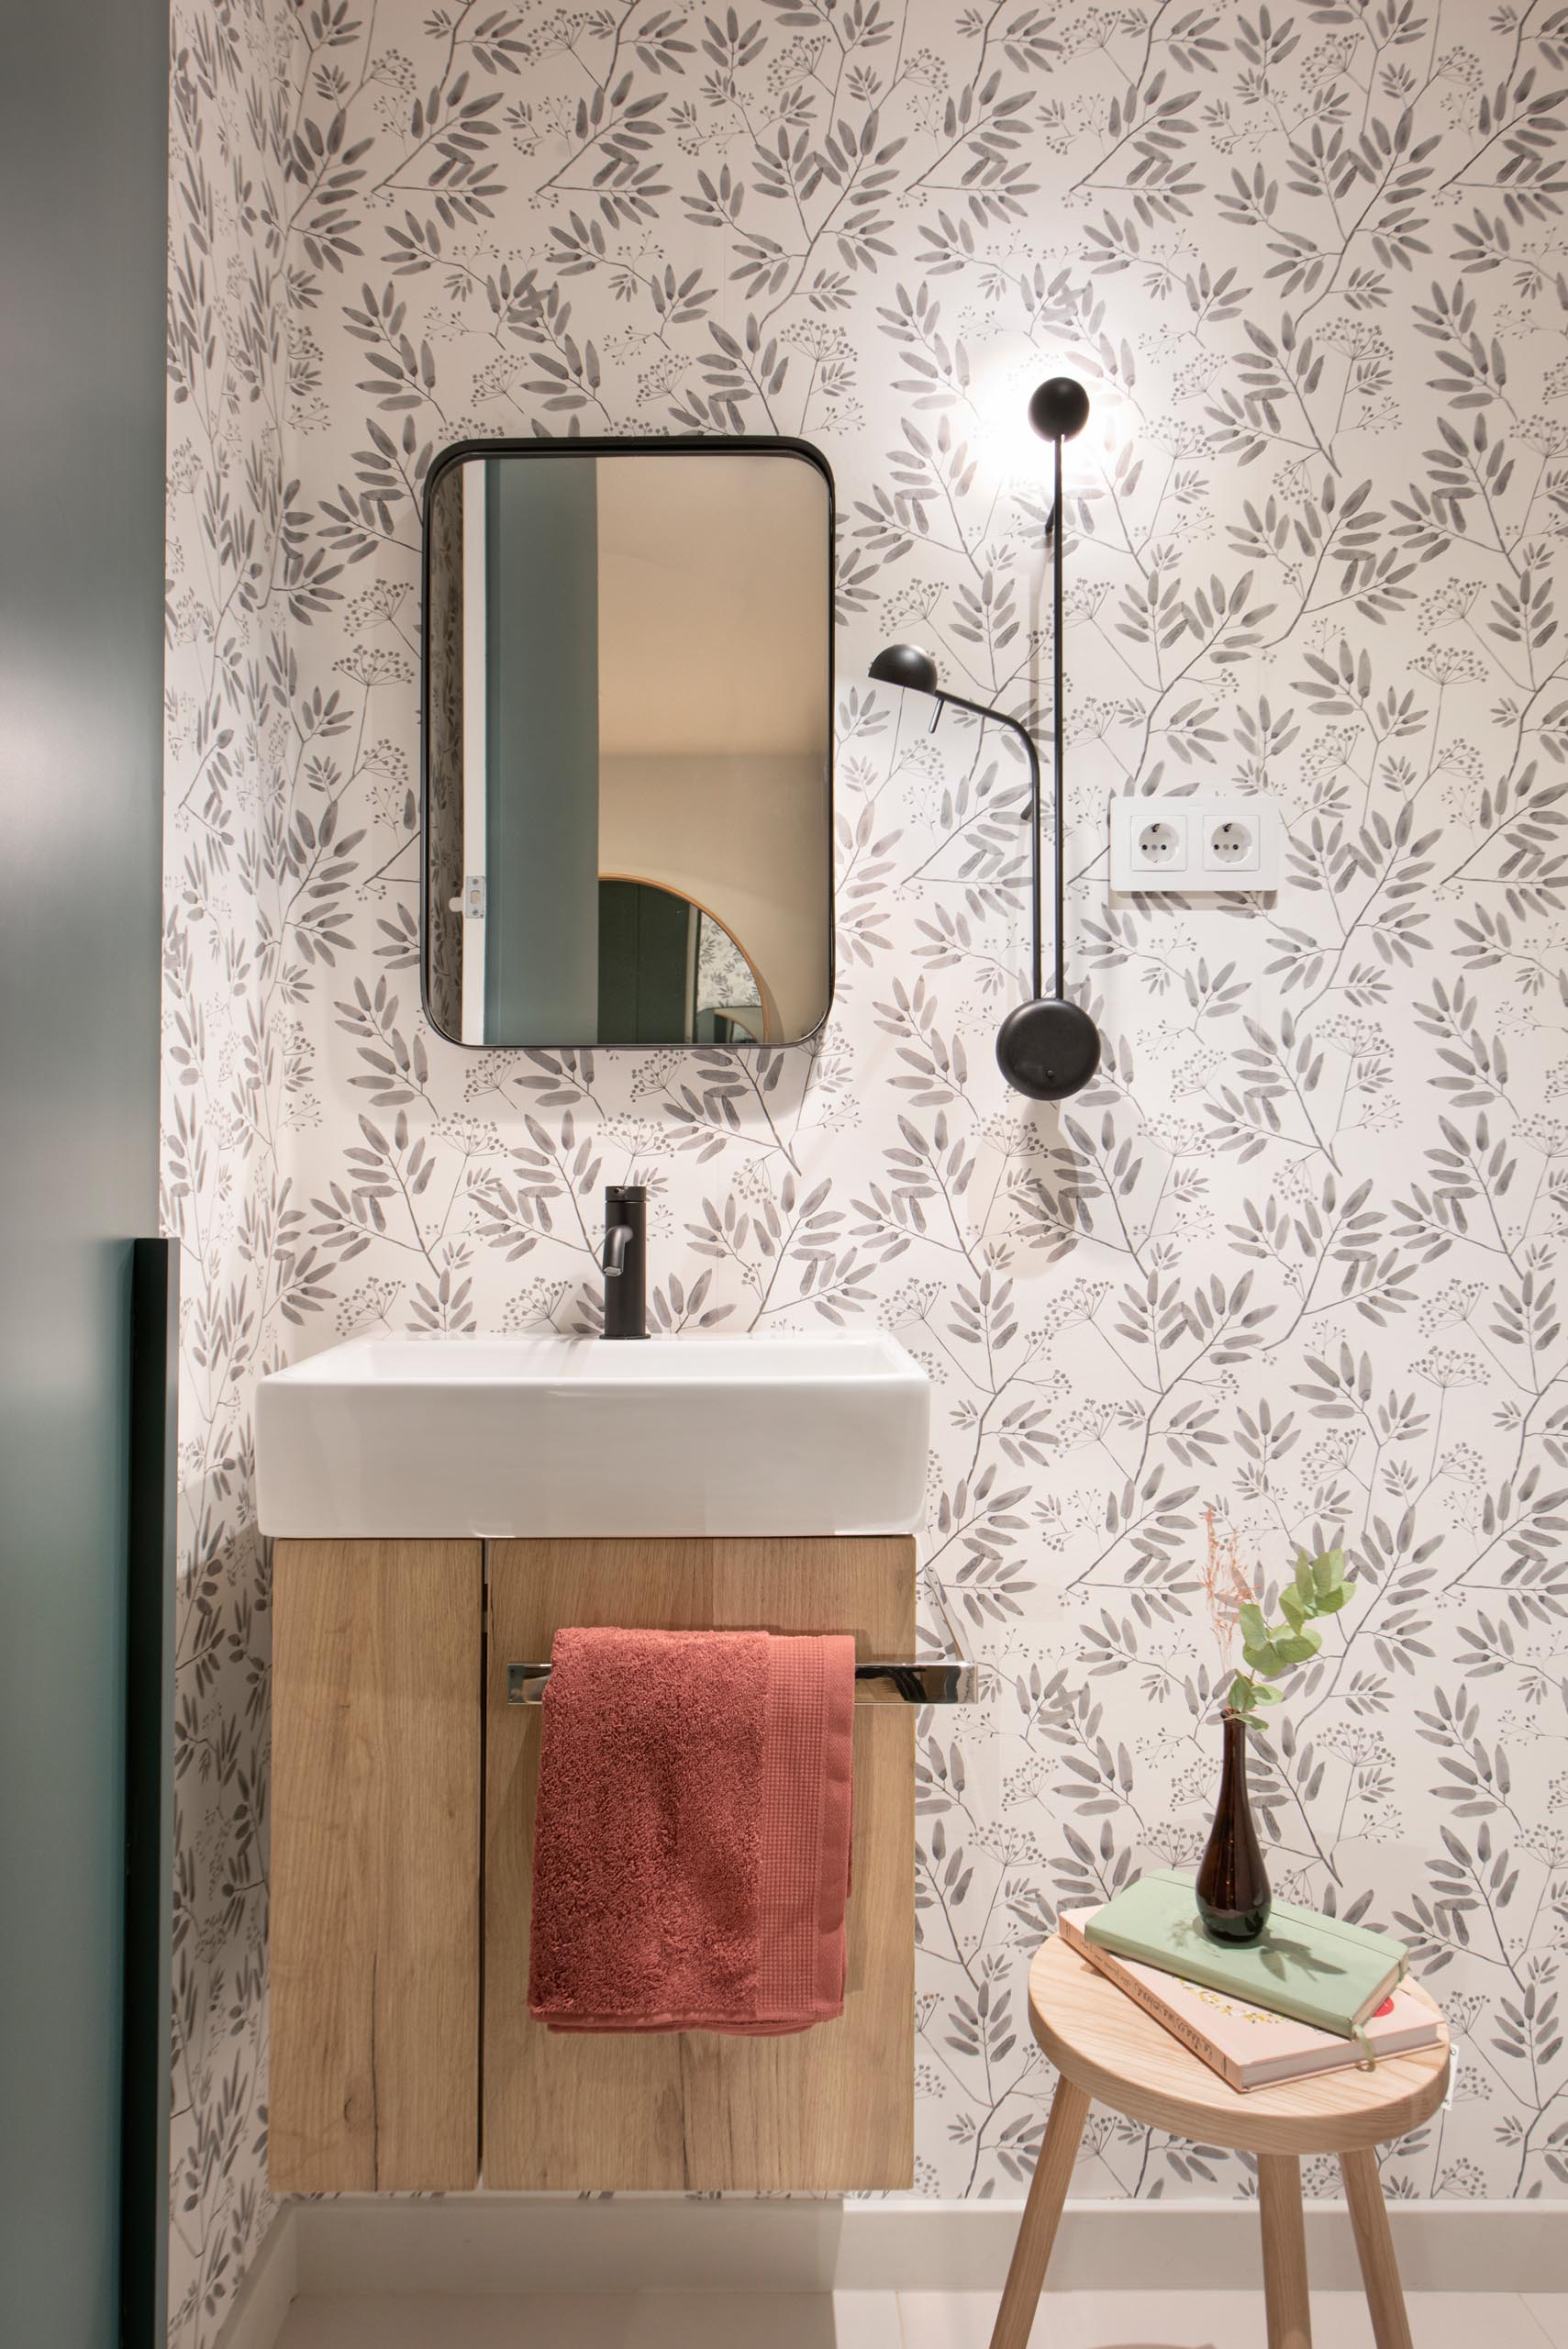 Floral pattern wallpaper, high contrast accessories and taps, and a wall lamp by Ichiro Iwasaki for Vibia give this small powder room by Egue y Seta a unique appearance.